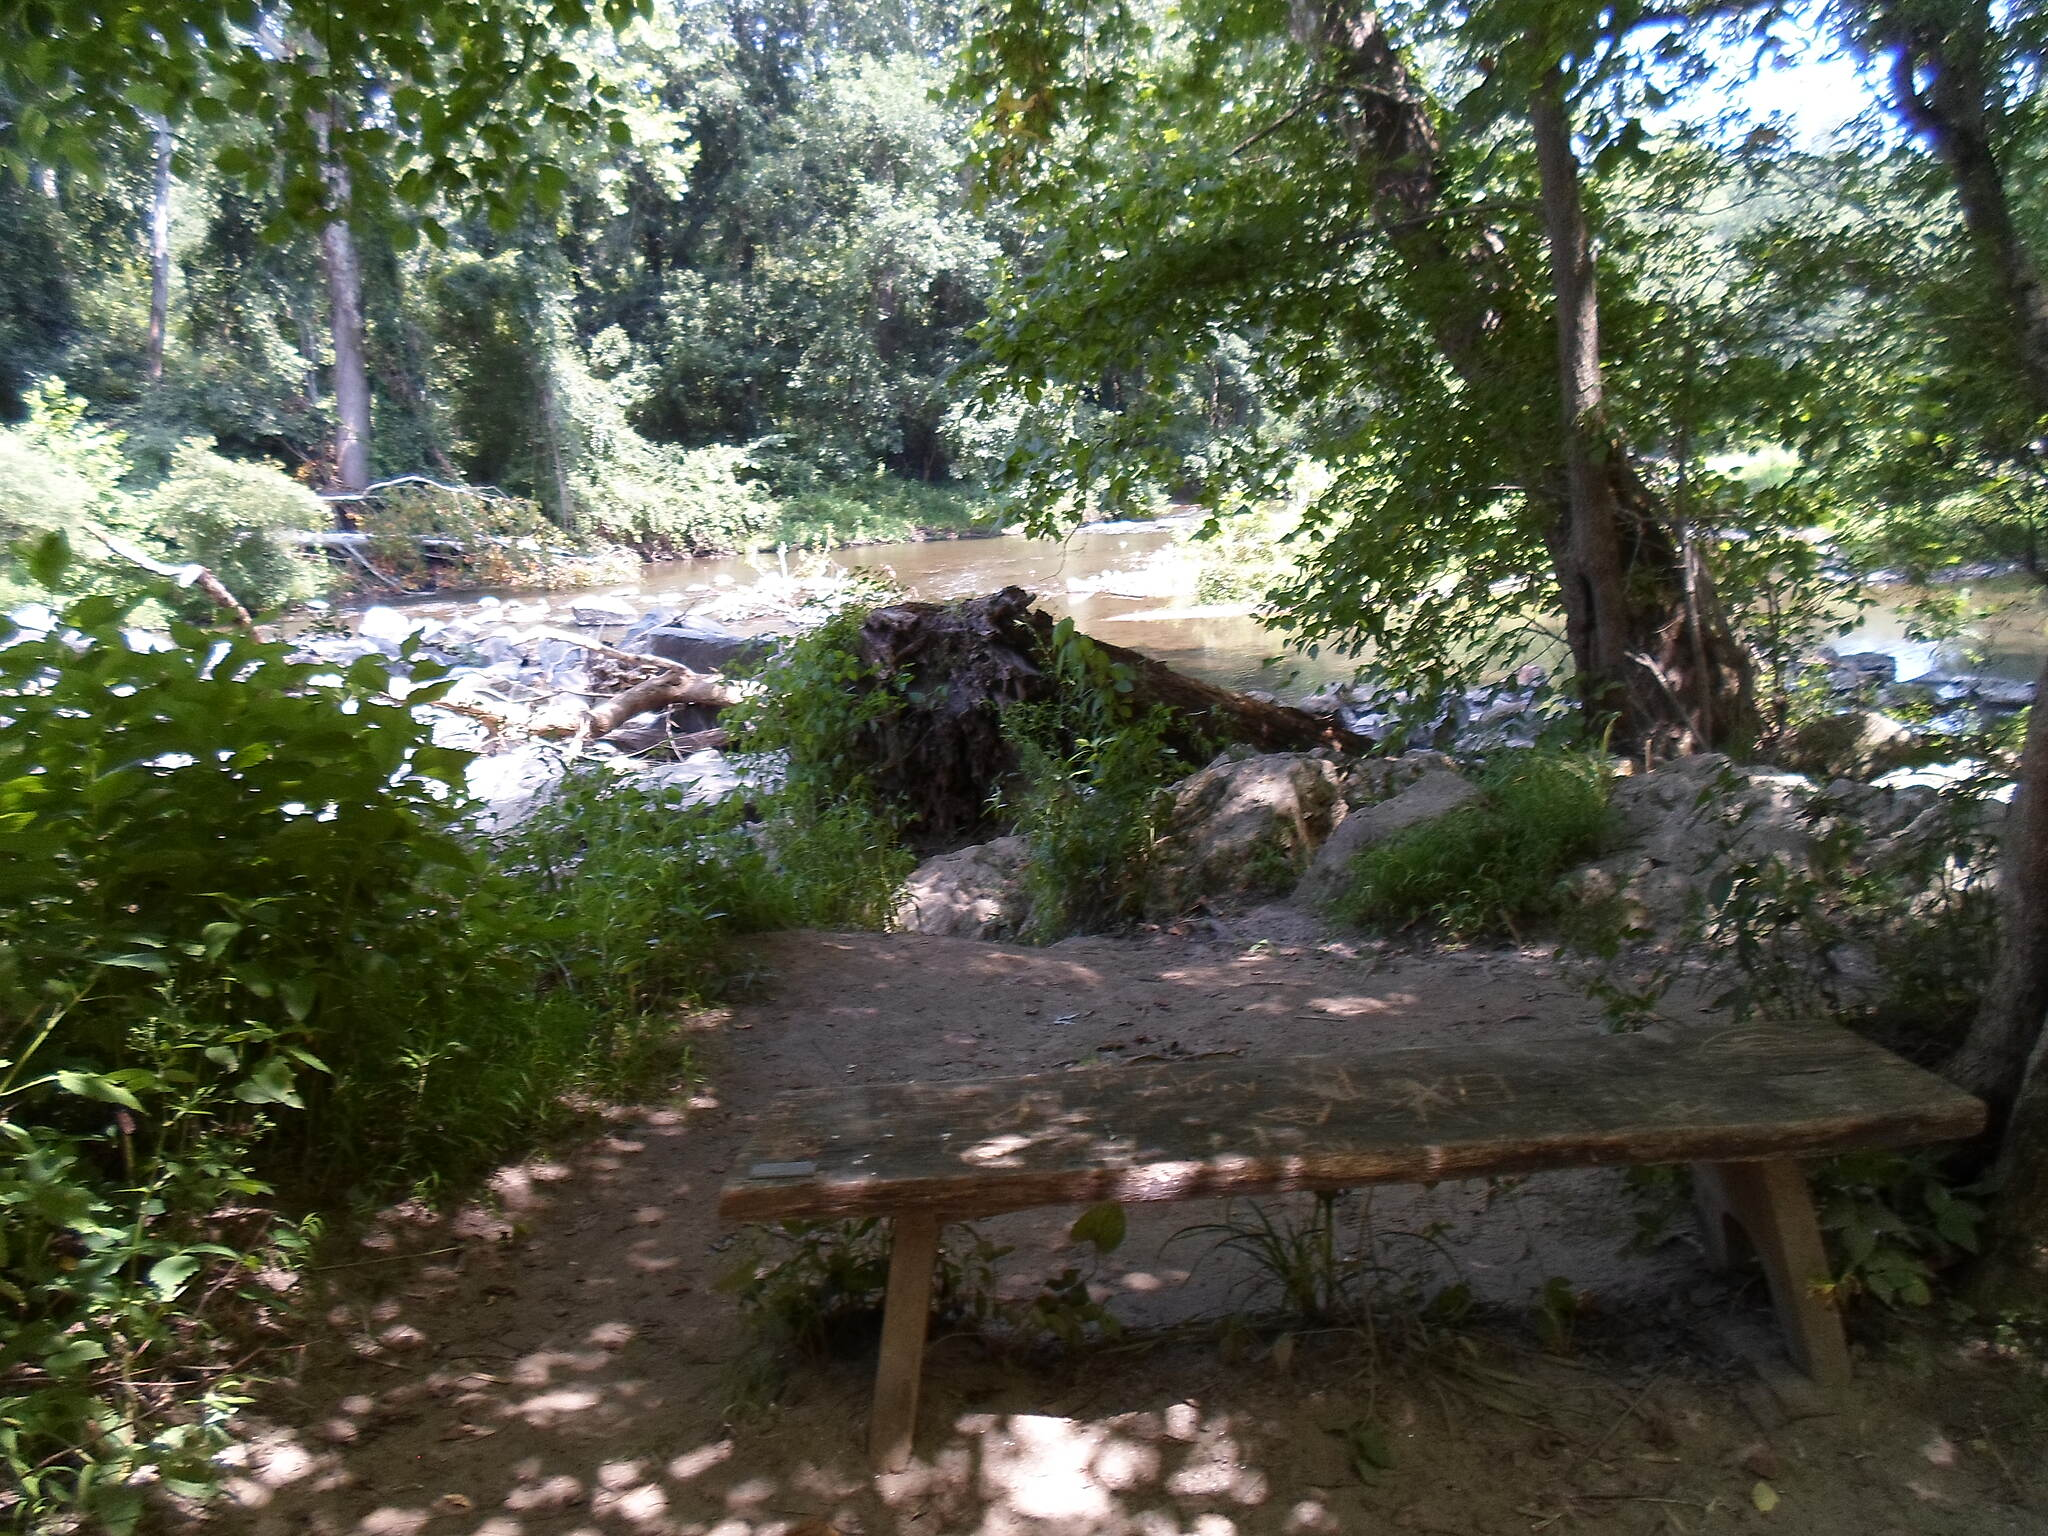 Creek Road Trail Creek Road Trail This wooden bench is a great place to relax and enjoy views of the White Clay Creek. Taken July 2015.